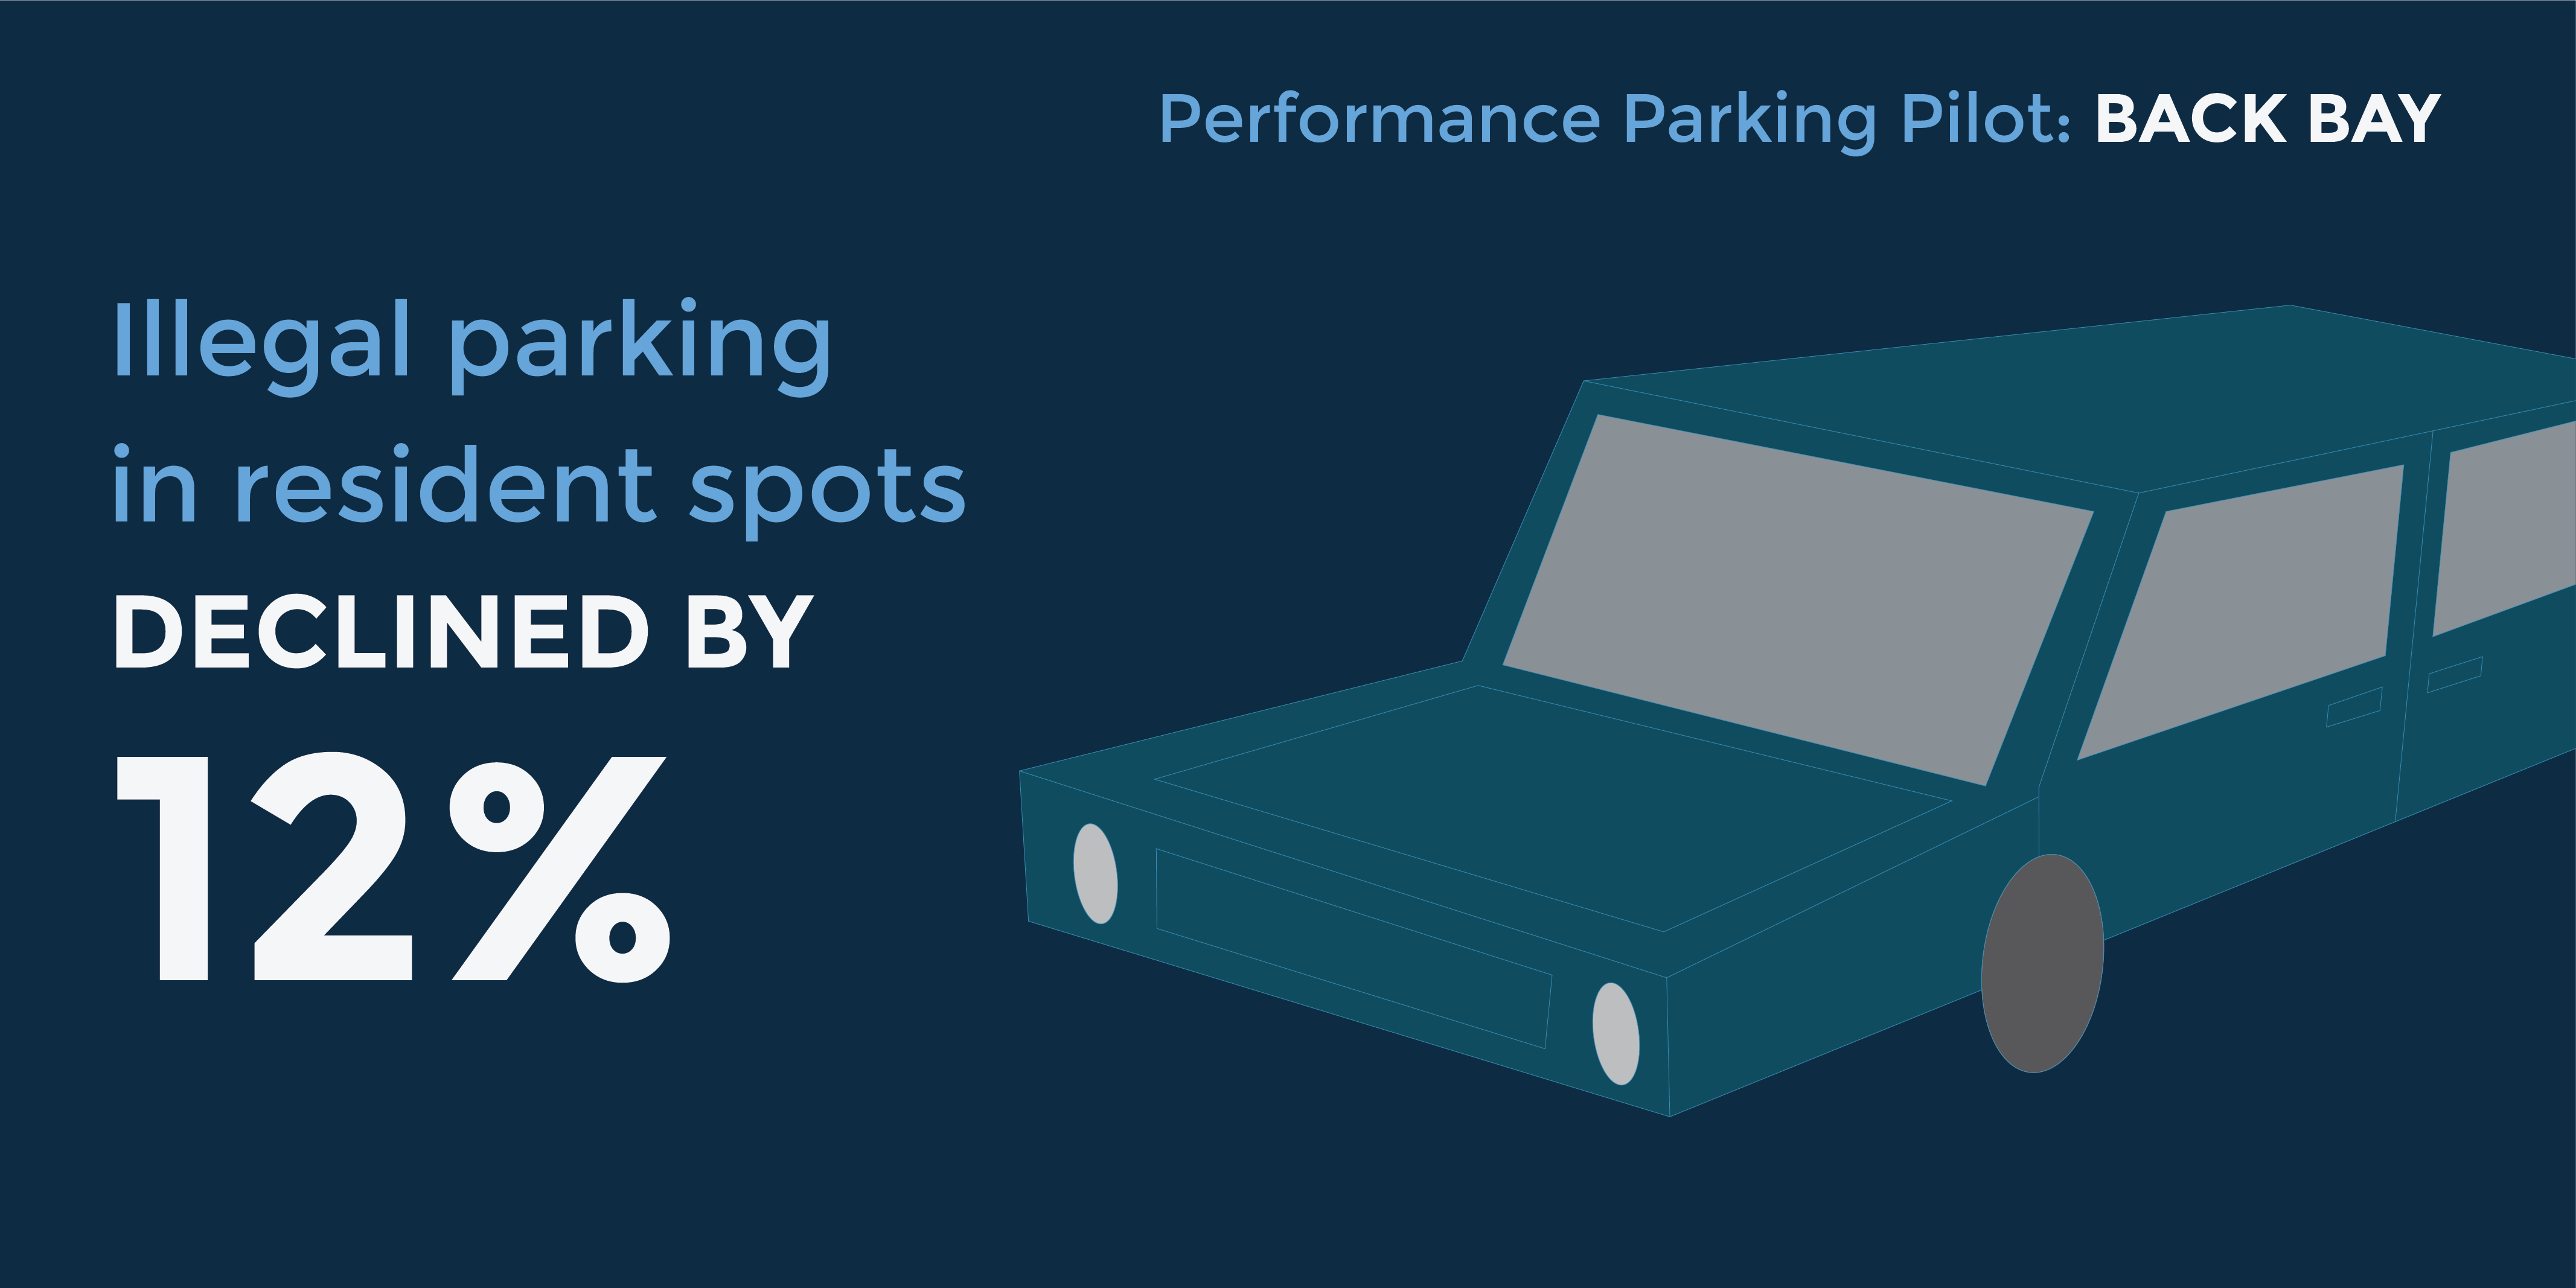 Image for back bay illegal parking stats